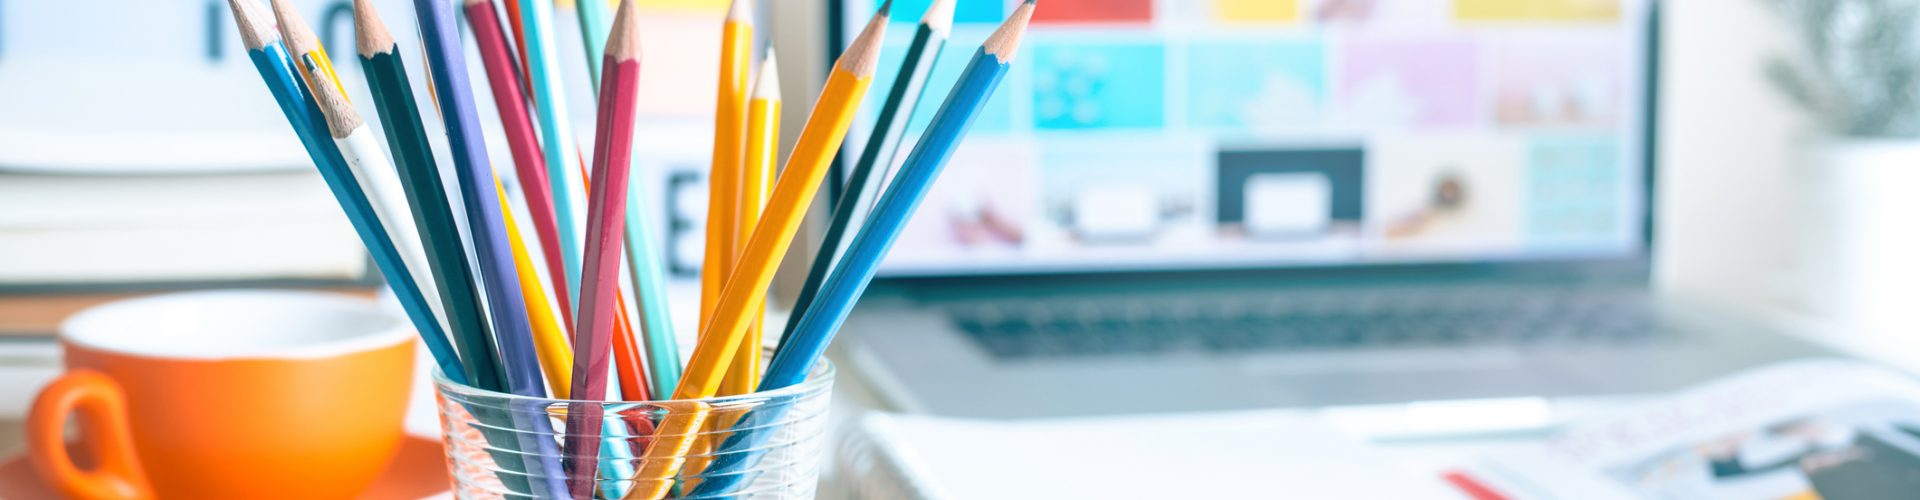 Colorful pencil in glass on desk table in home office.business creativity ideas